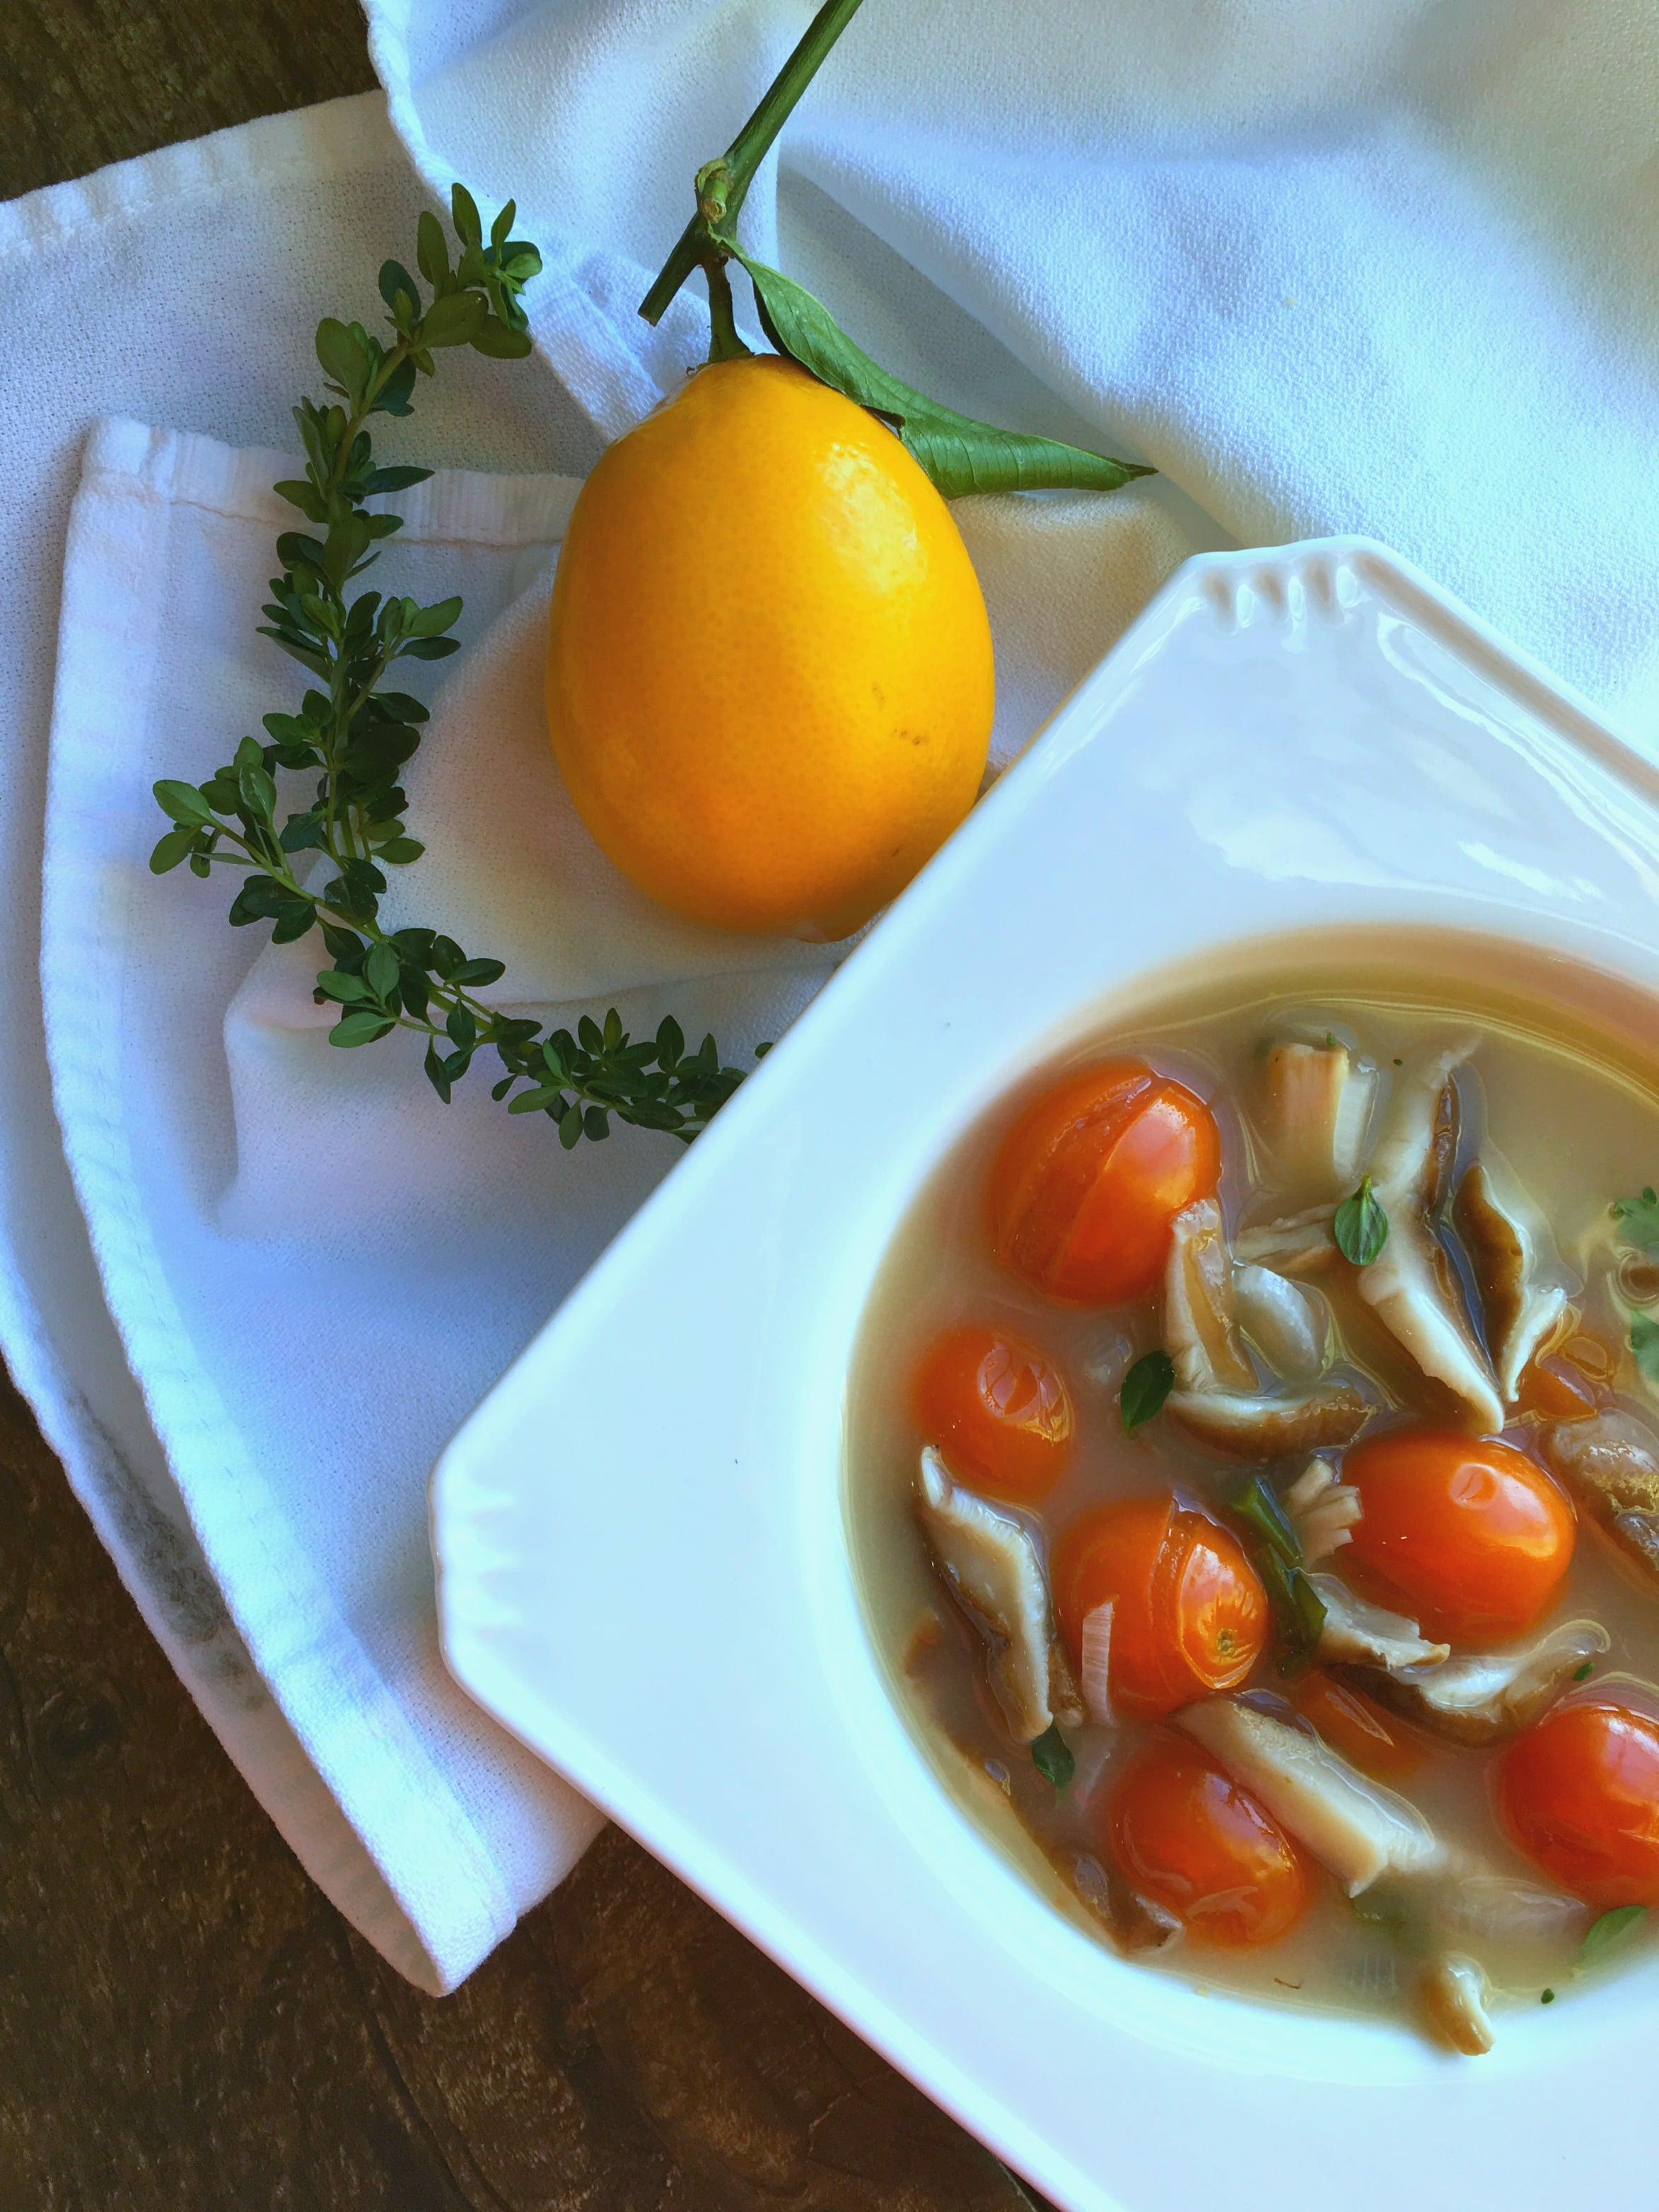 This skinny vegetable soup is a great recipe to enjoy during the winter months when our bodies crave warmth and nutrition